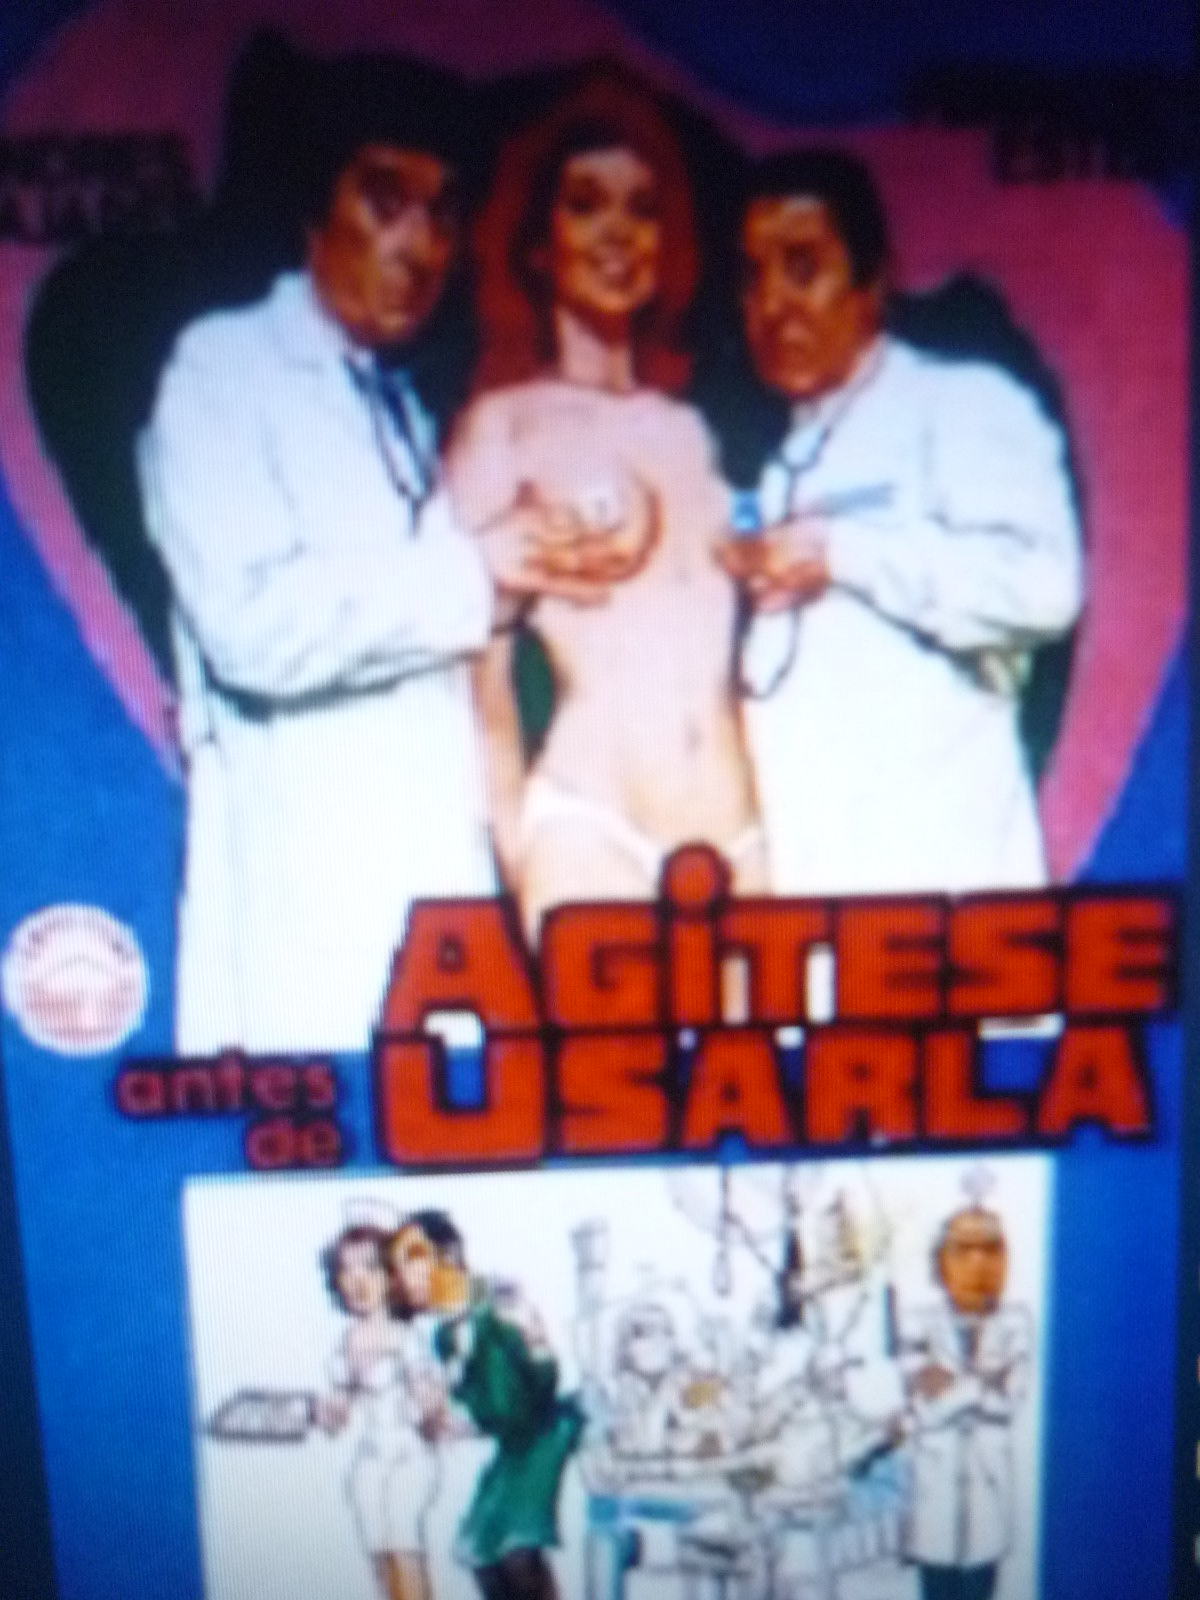 Agitese antes de usarla 1983 threesome erotic scene 7